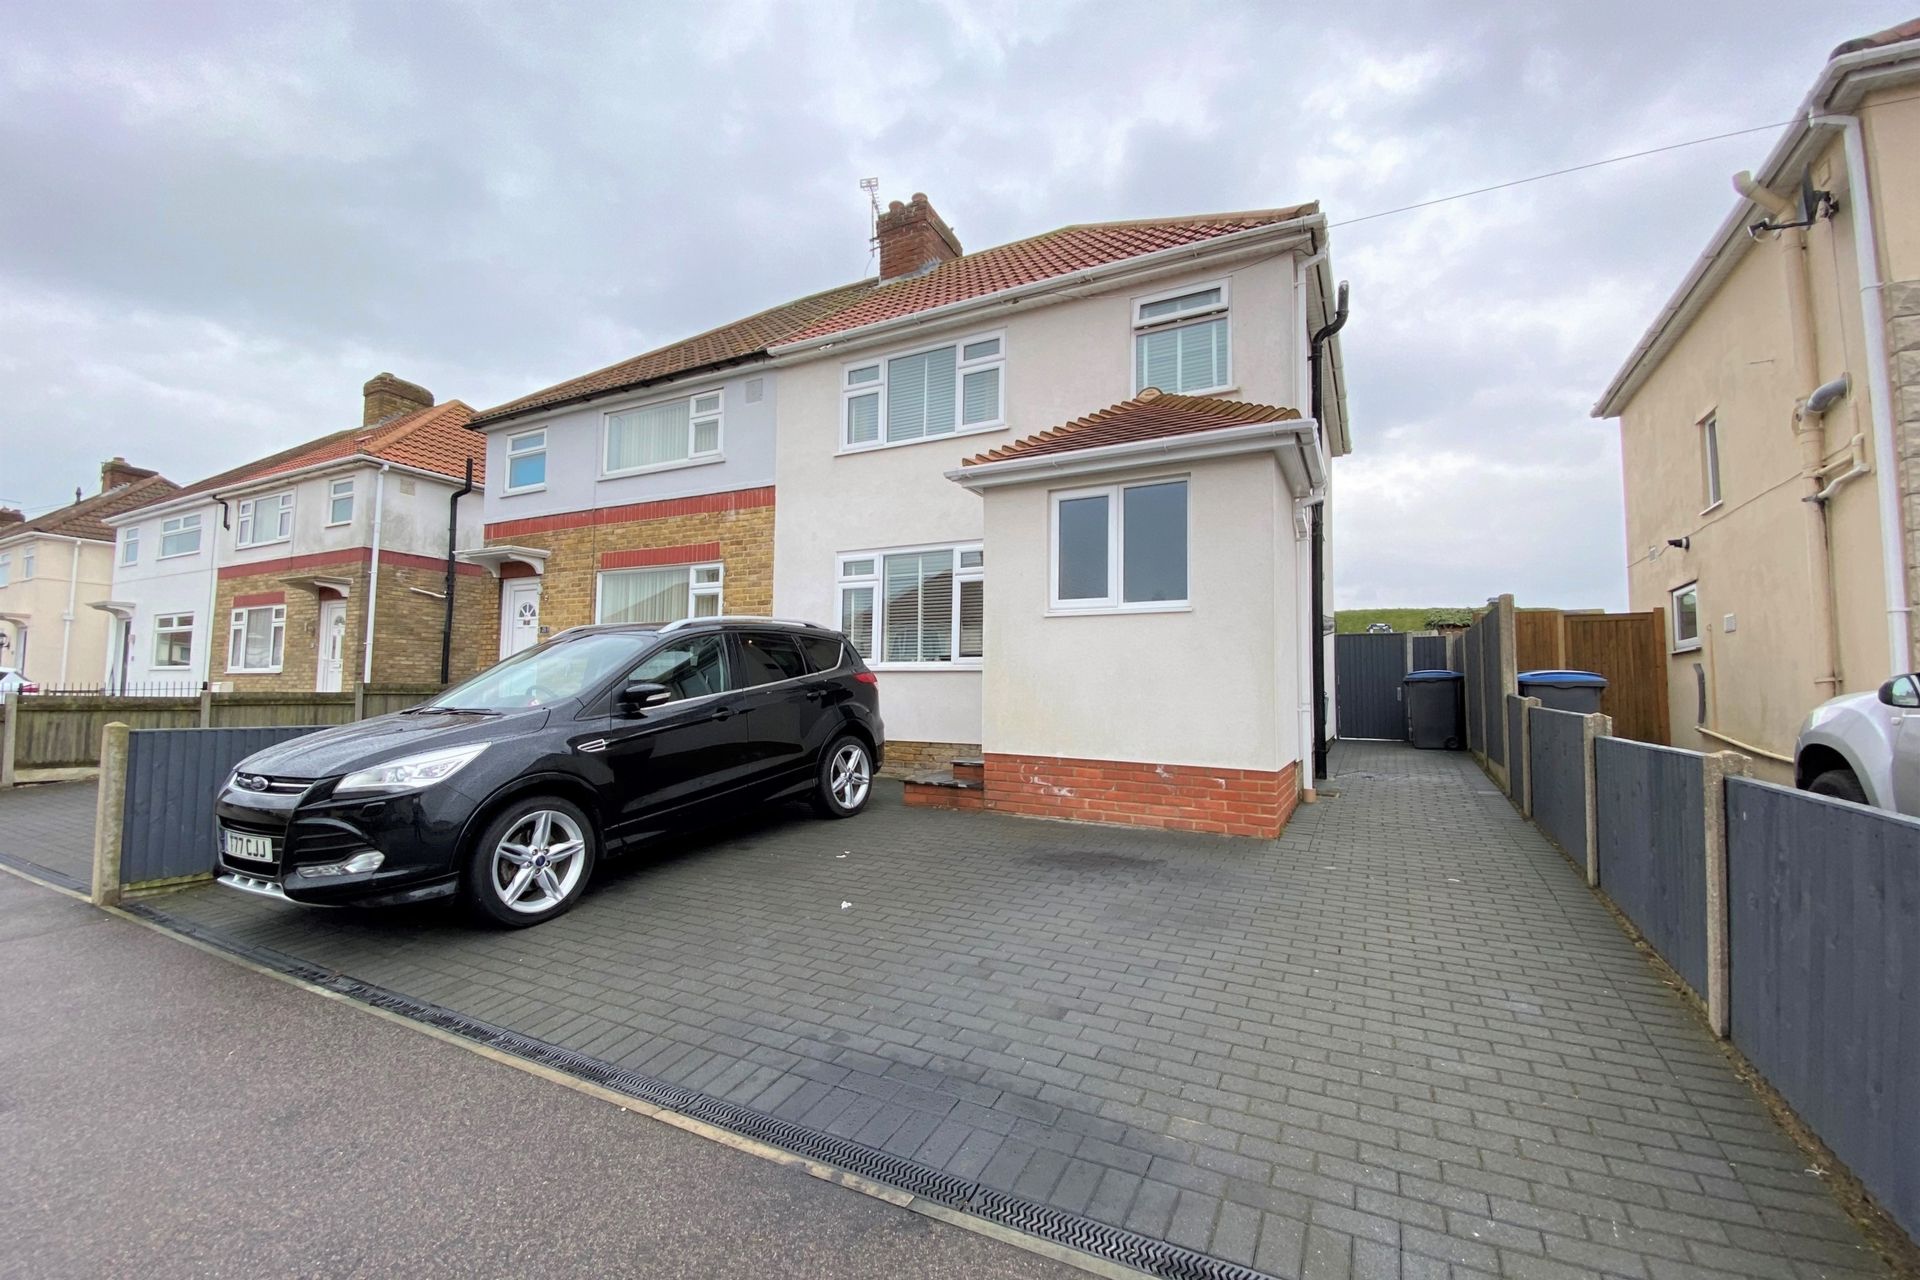 Quern Road  Deal  CT14